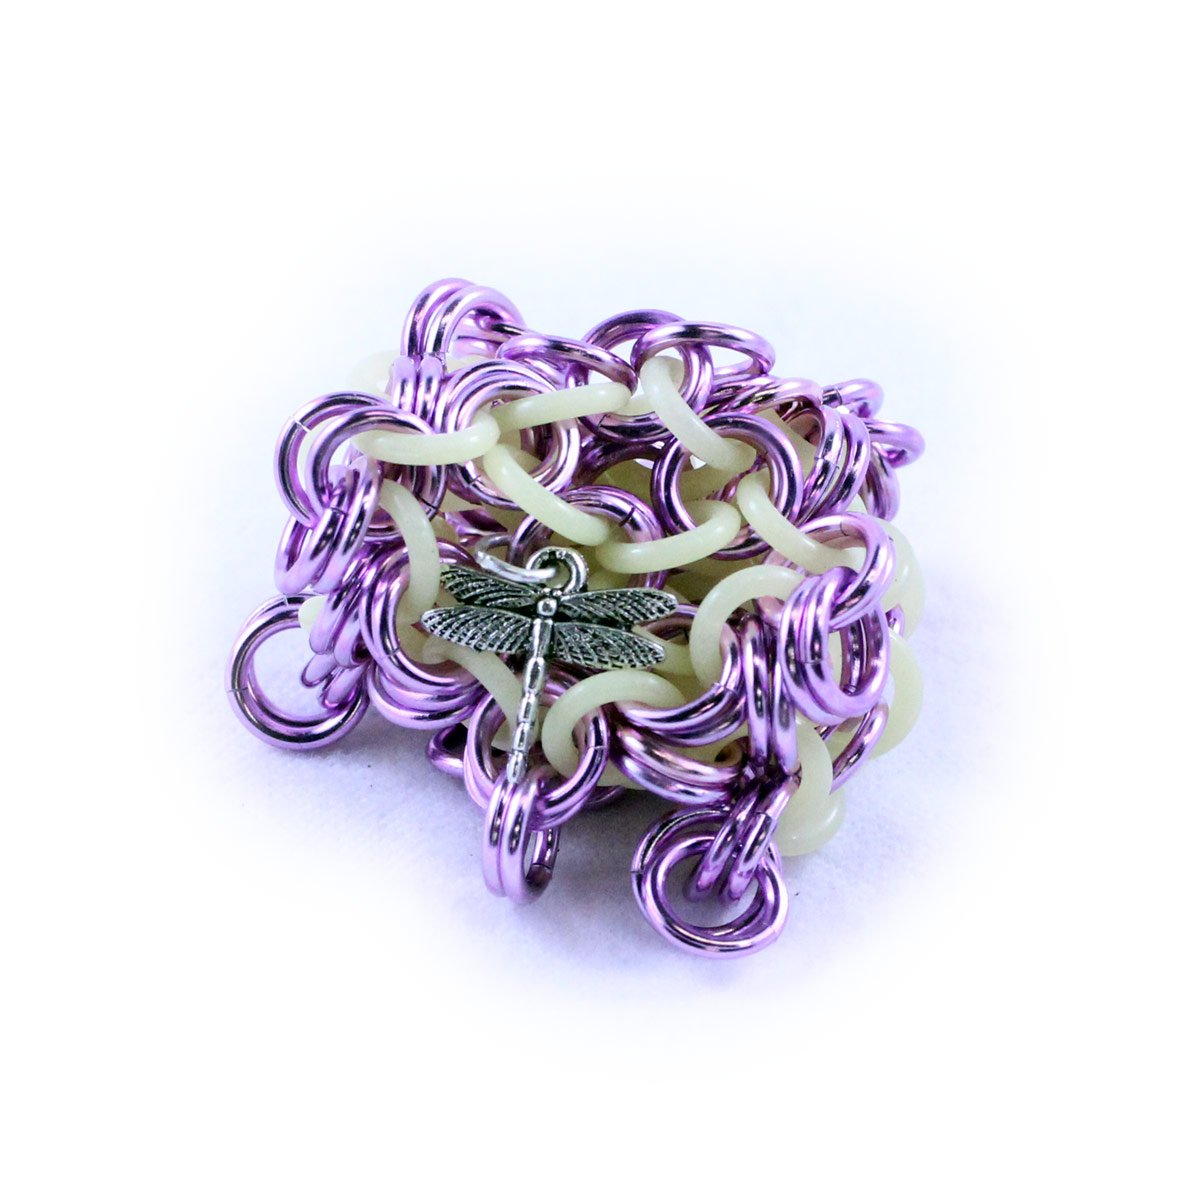 Dragonfly Footbags Purple Glow in the Dark 22 Gram Chainmail Footbag (Hacky Sack) by Dragonfly Footbags